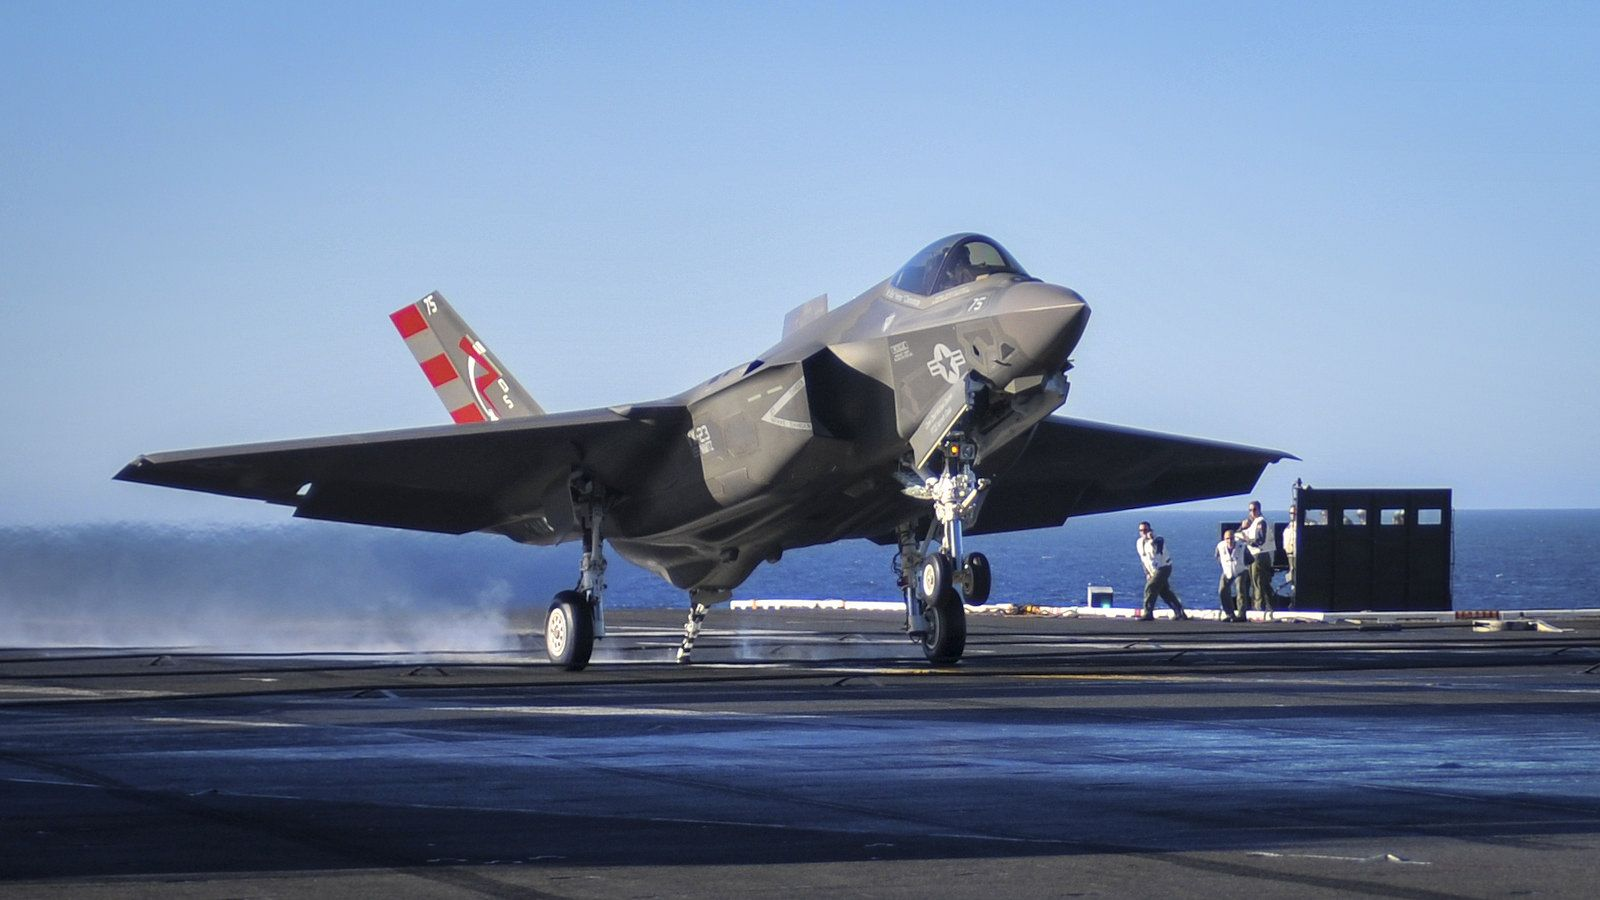 Because the arrestor hook was located too close to the landing gear, the F-35C was originally unable to land on an aircraft carrier.